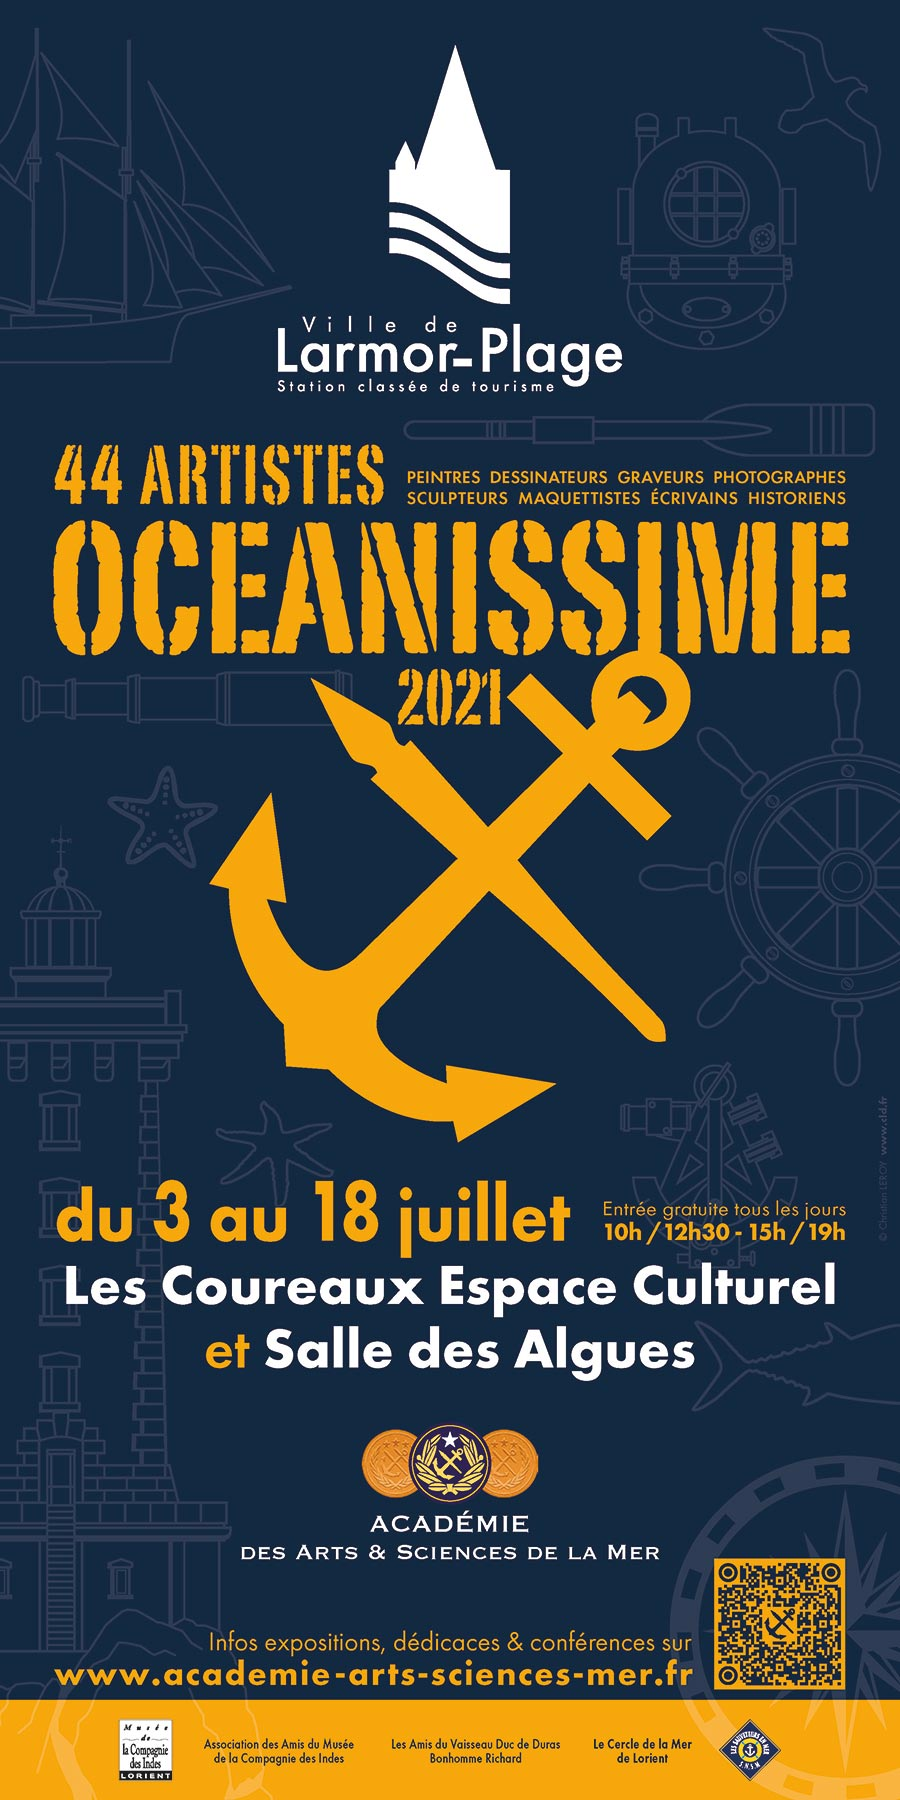 OCEANISSIME 2021 Affiche 900x1800px